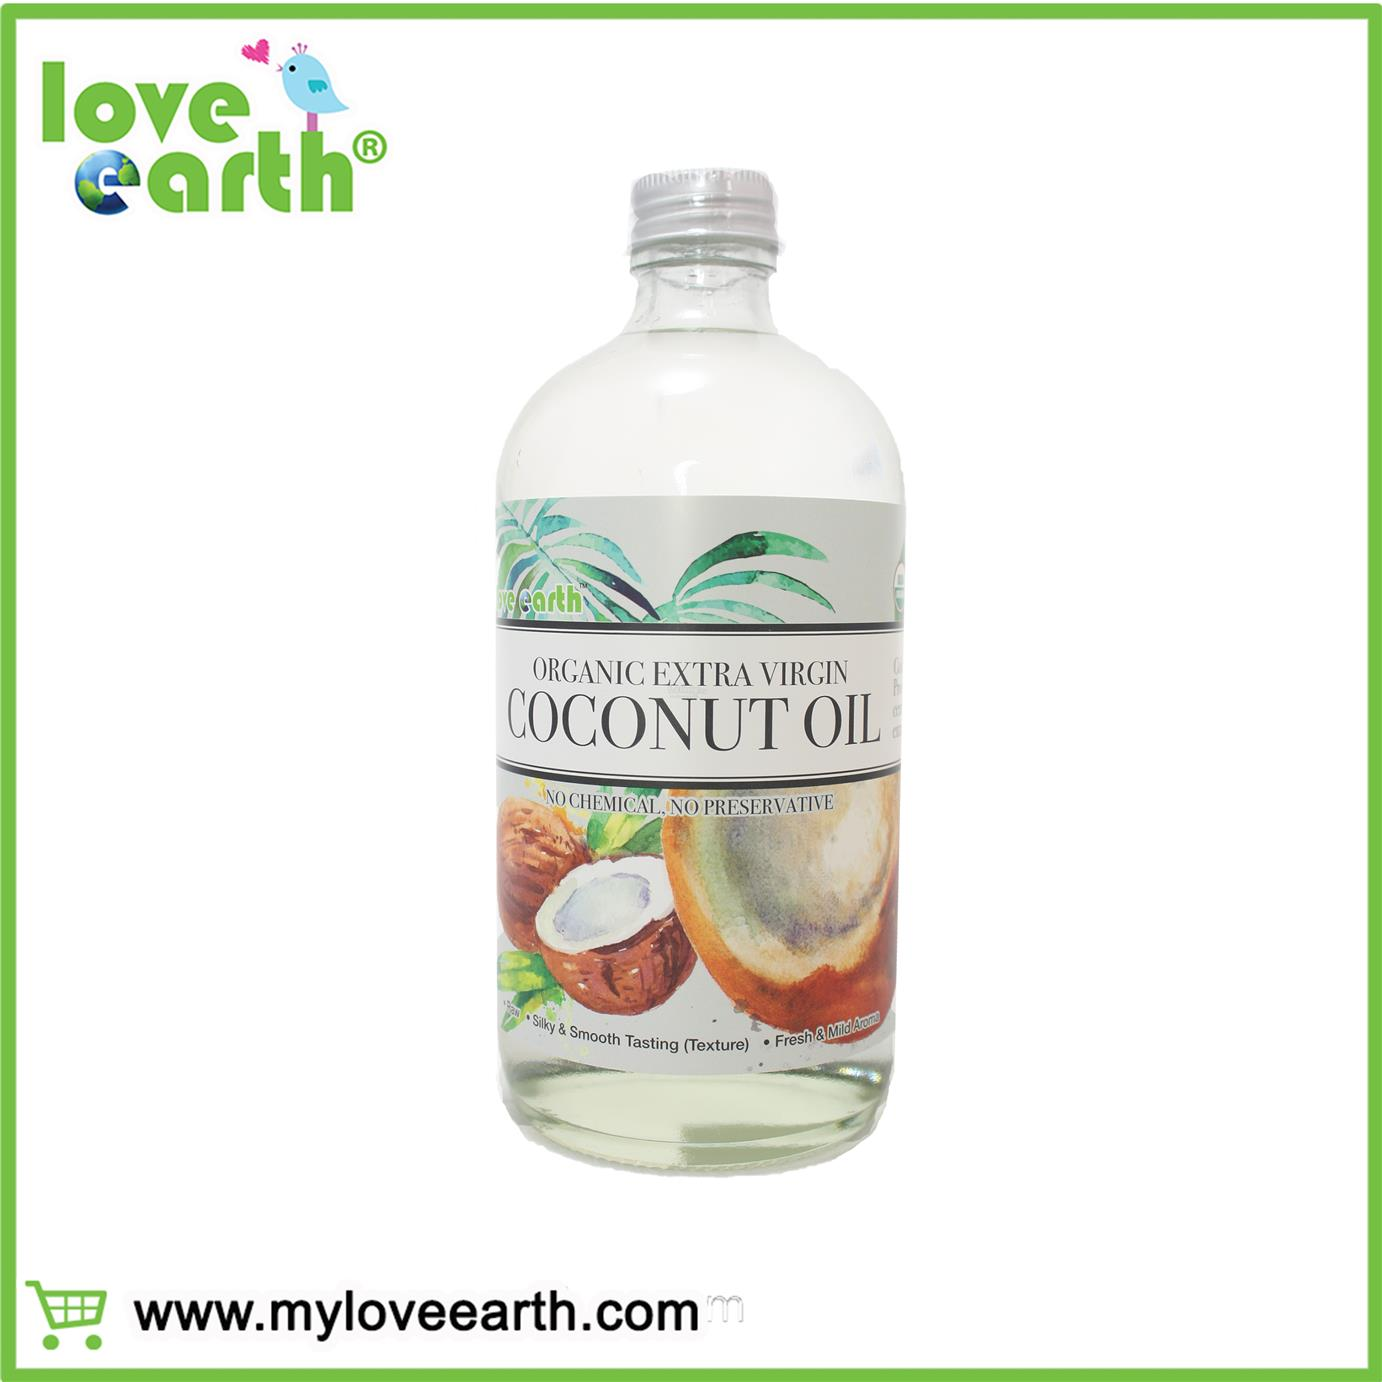 LOVE EARTH ORGANIC EXTRA VIRGIN COCONUT OIL 480ML